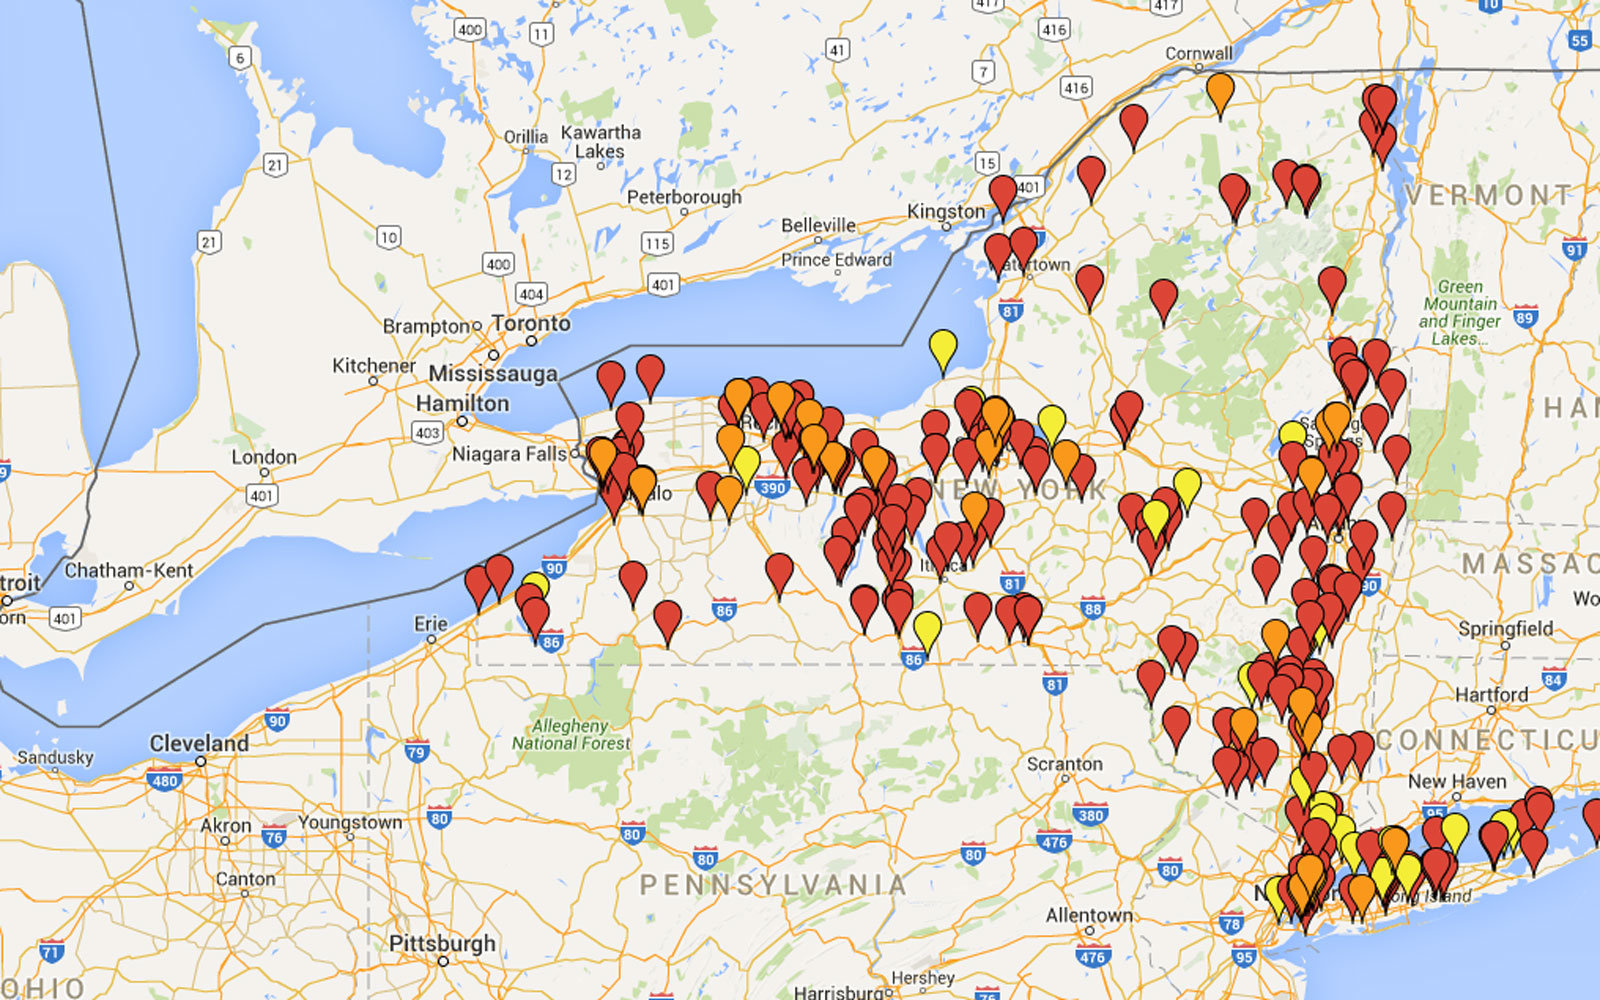 Every beer lover in New York state needs this map | Travel + Leisure